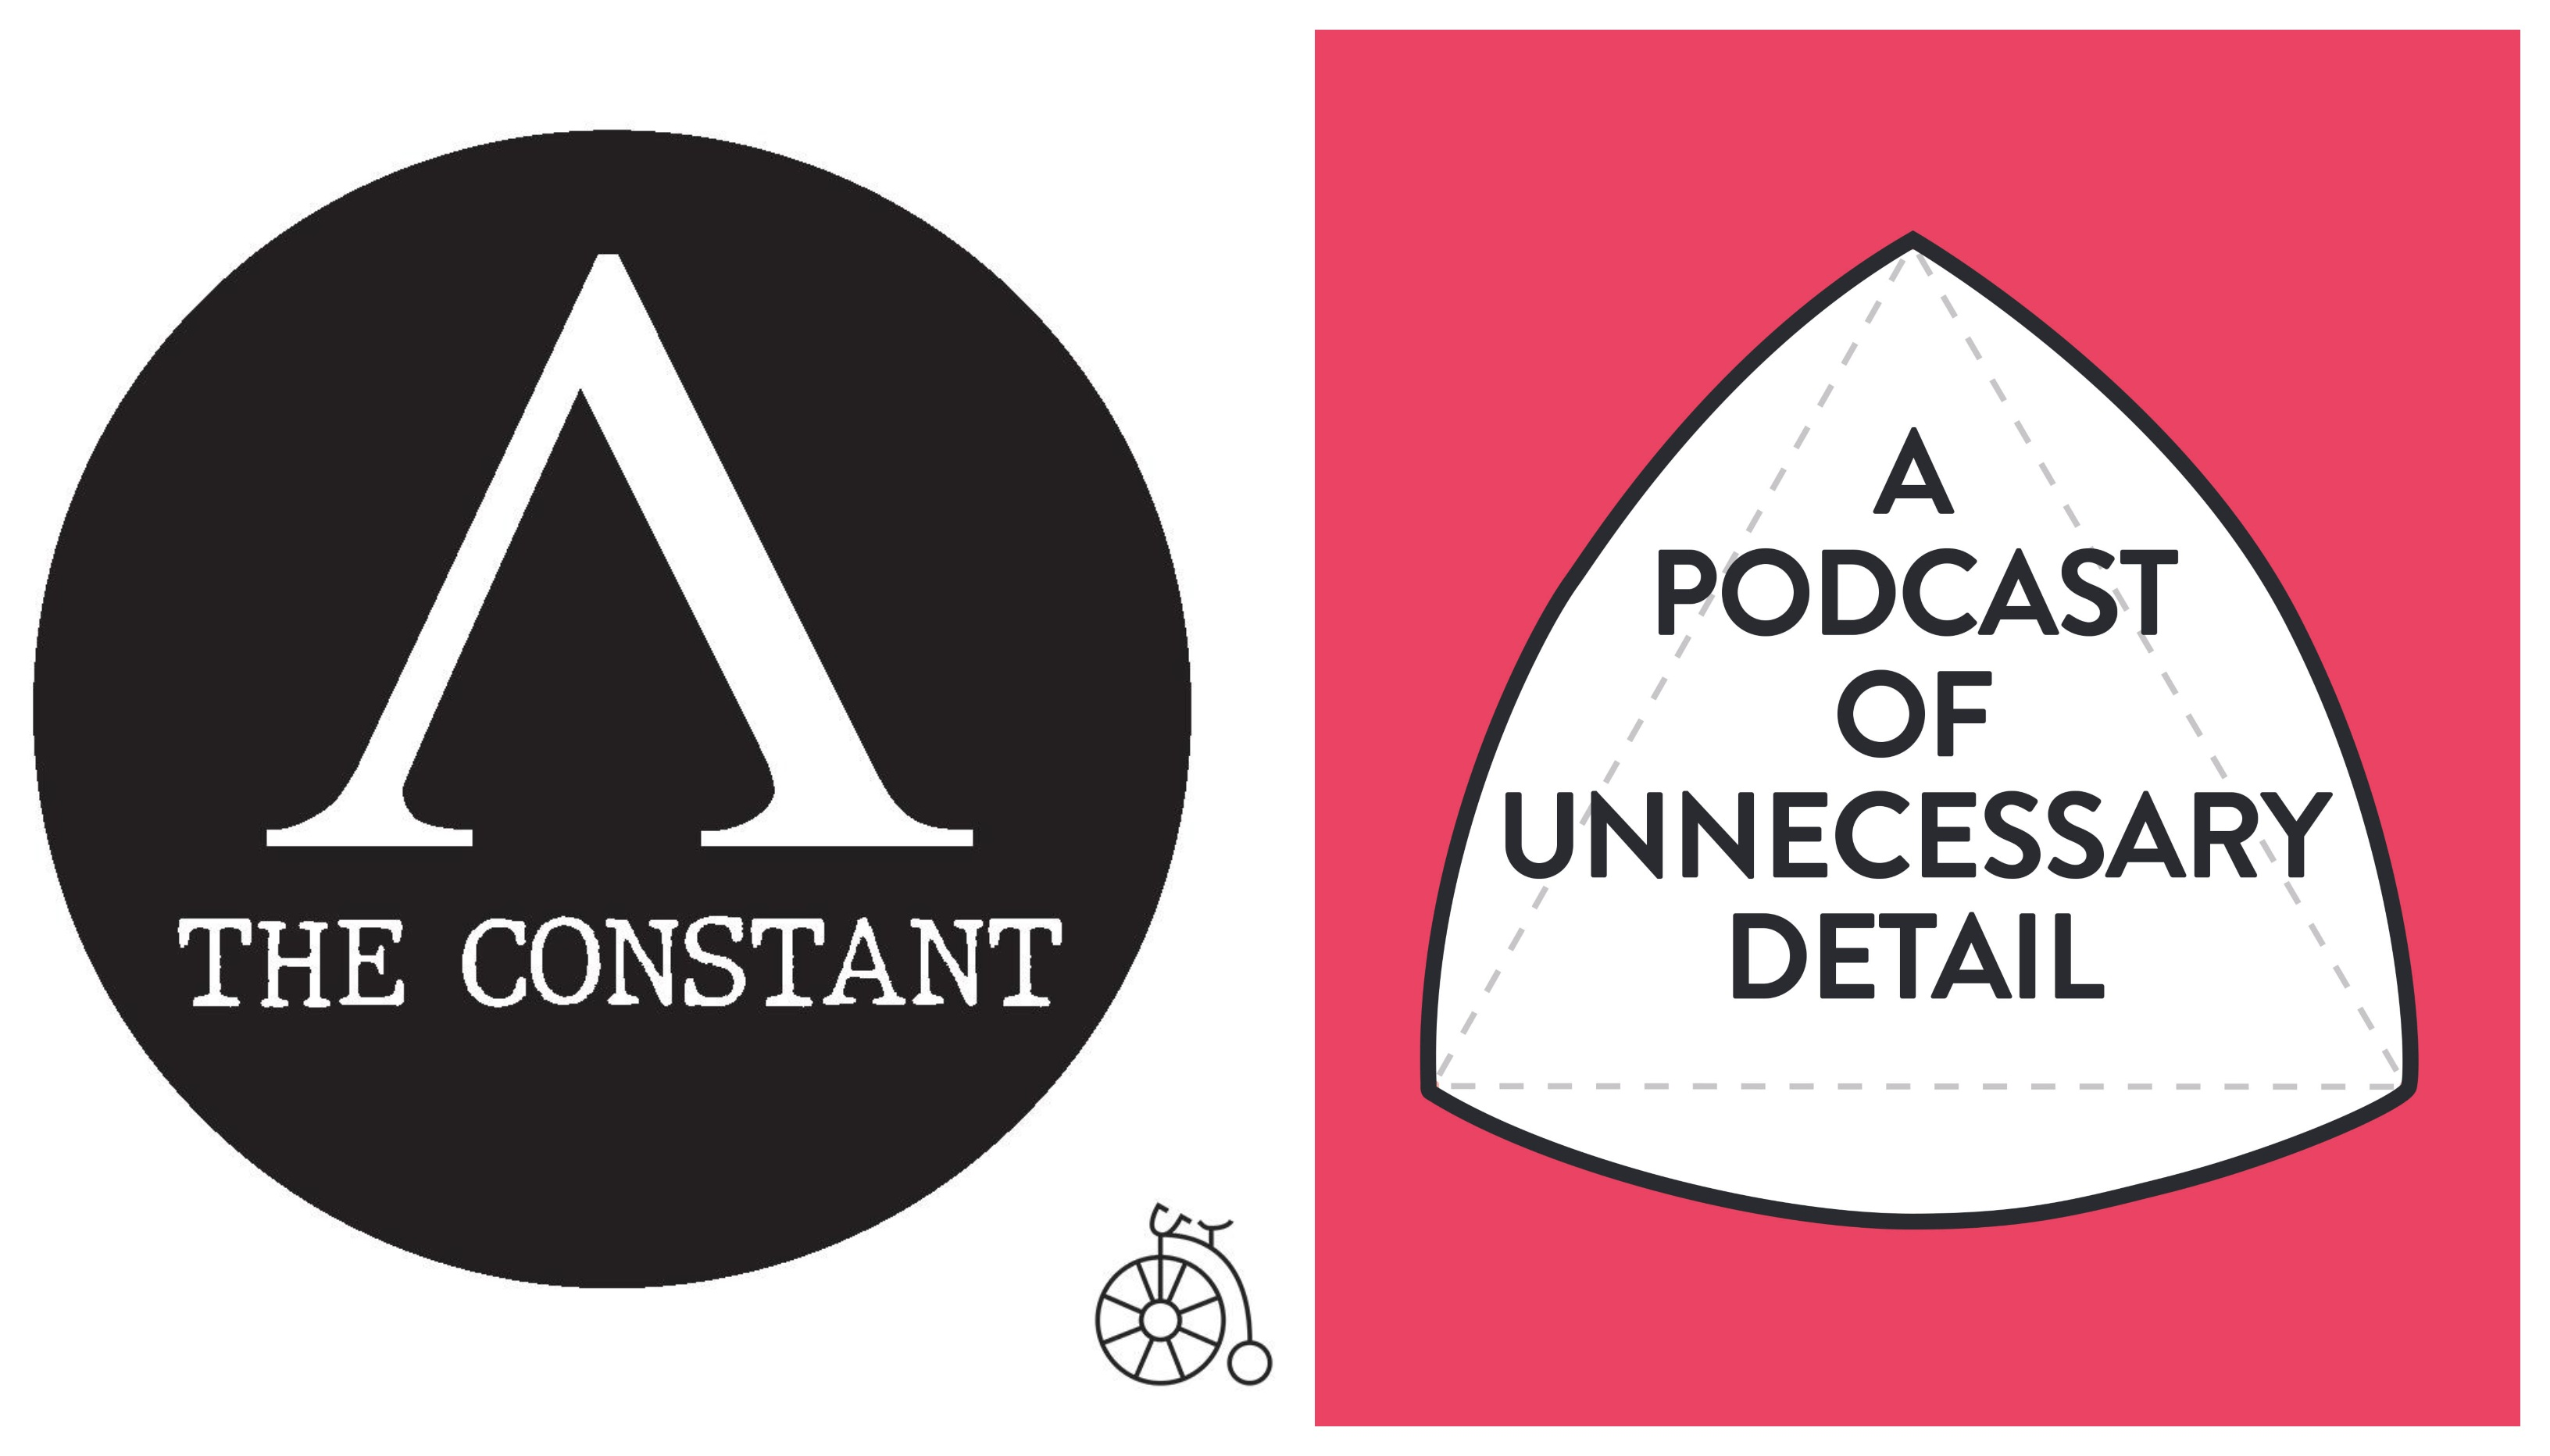 Constant - A Podcast of Unnecessary Detail